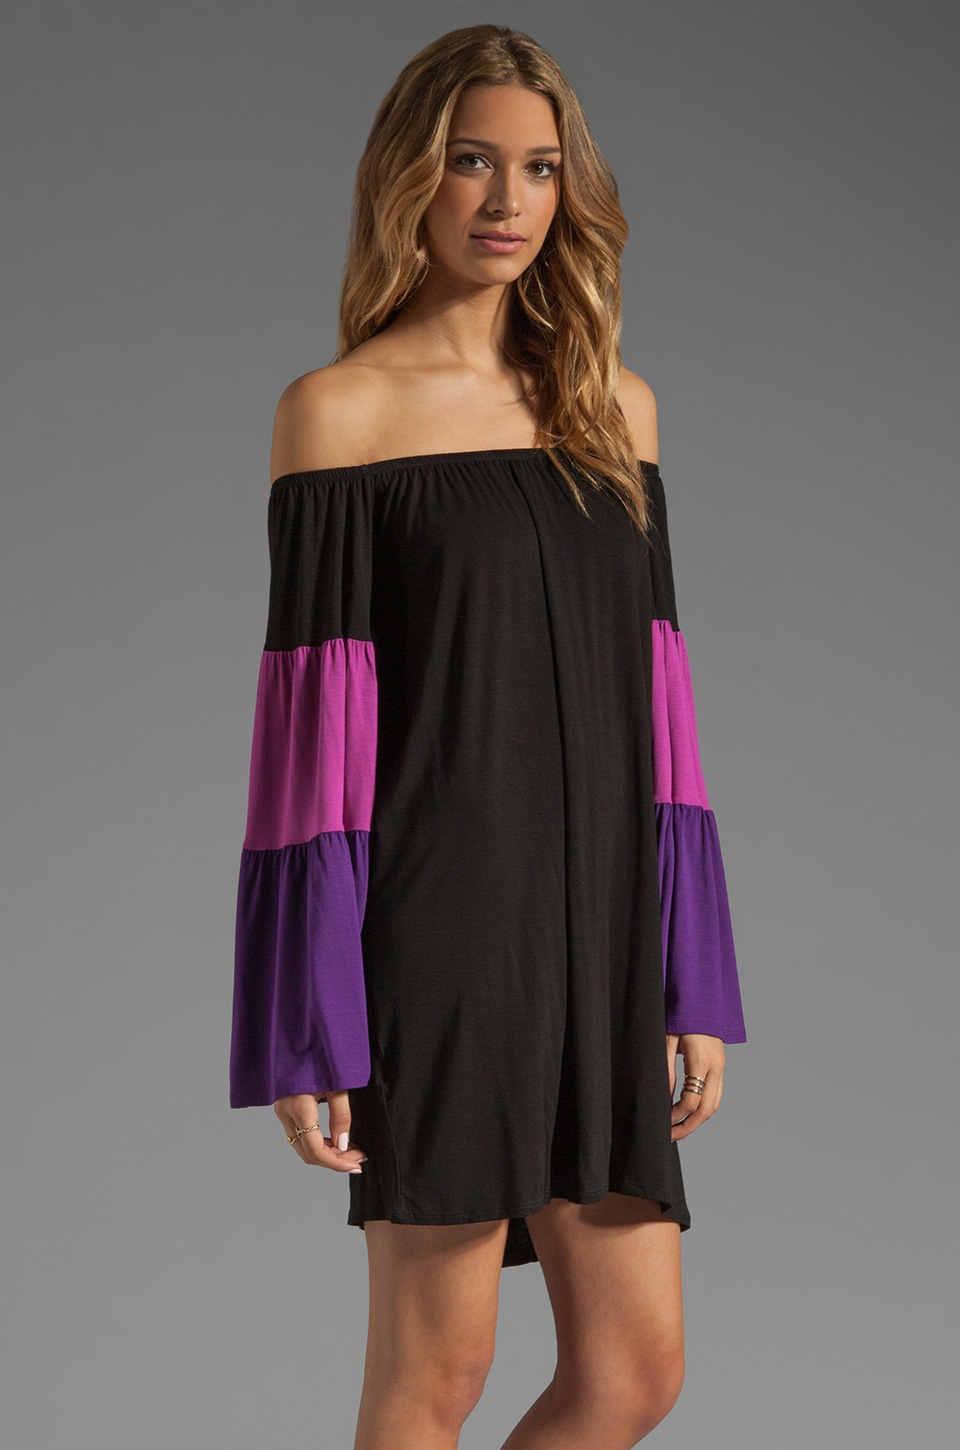 James & Joy Lucca off the Shoulder Dress in Magenta